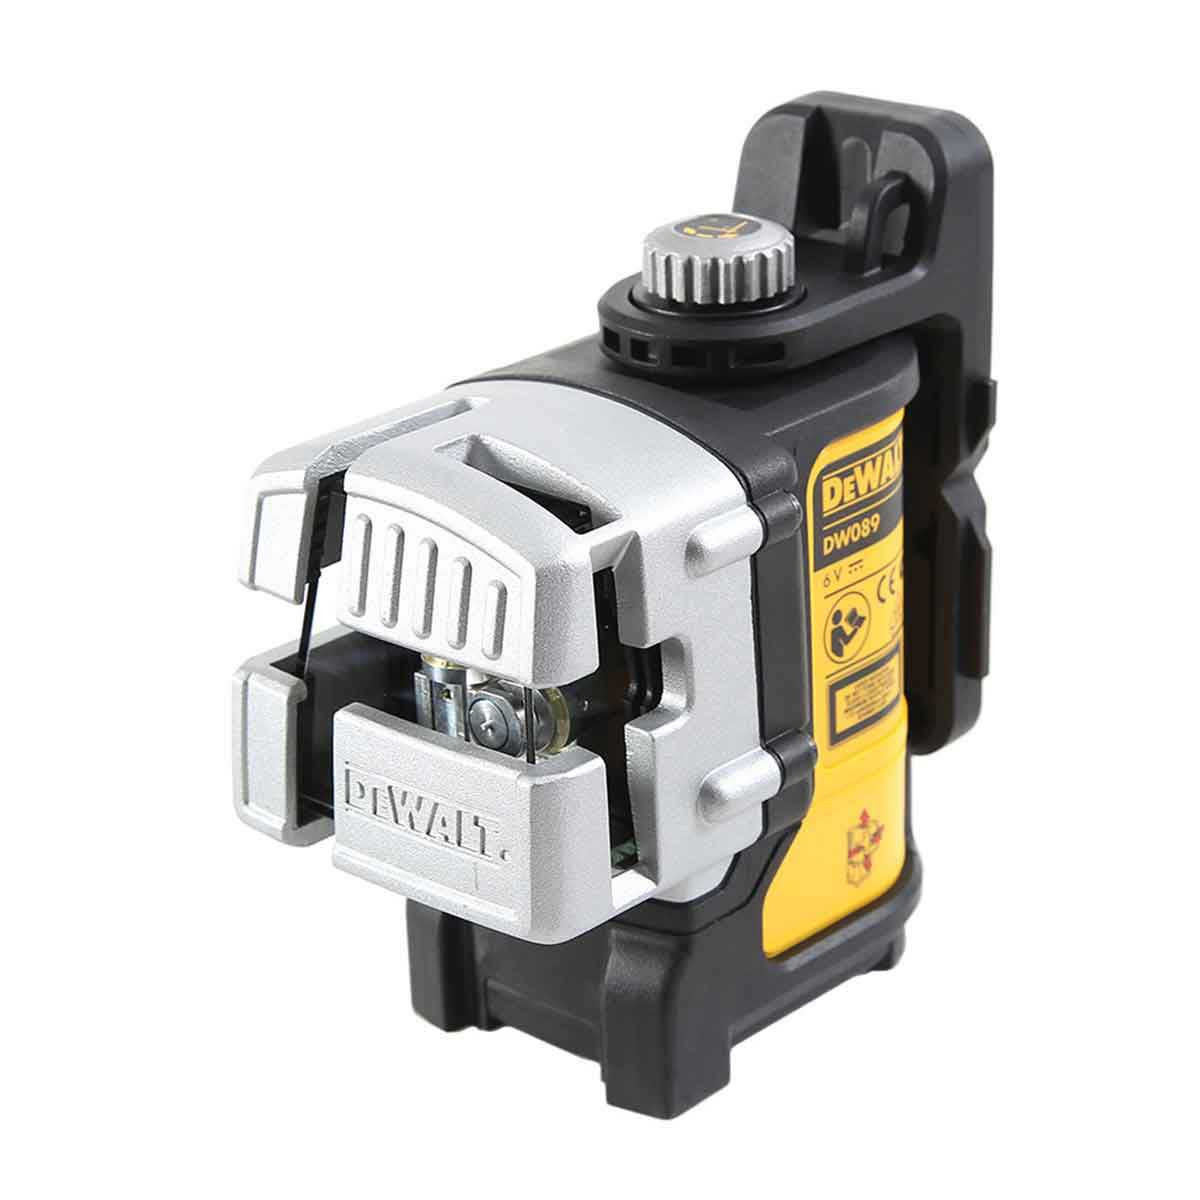 3 Beam Line Laser to aid in 90-Degree layout Dewalt